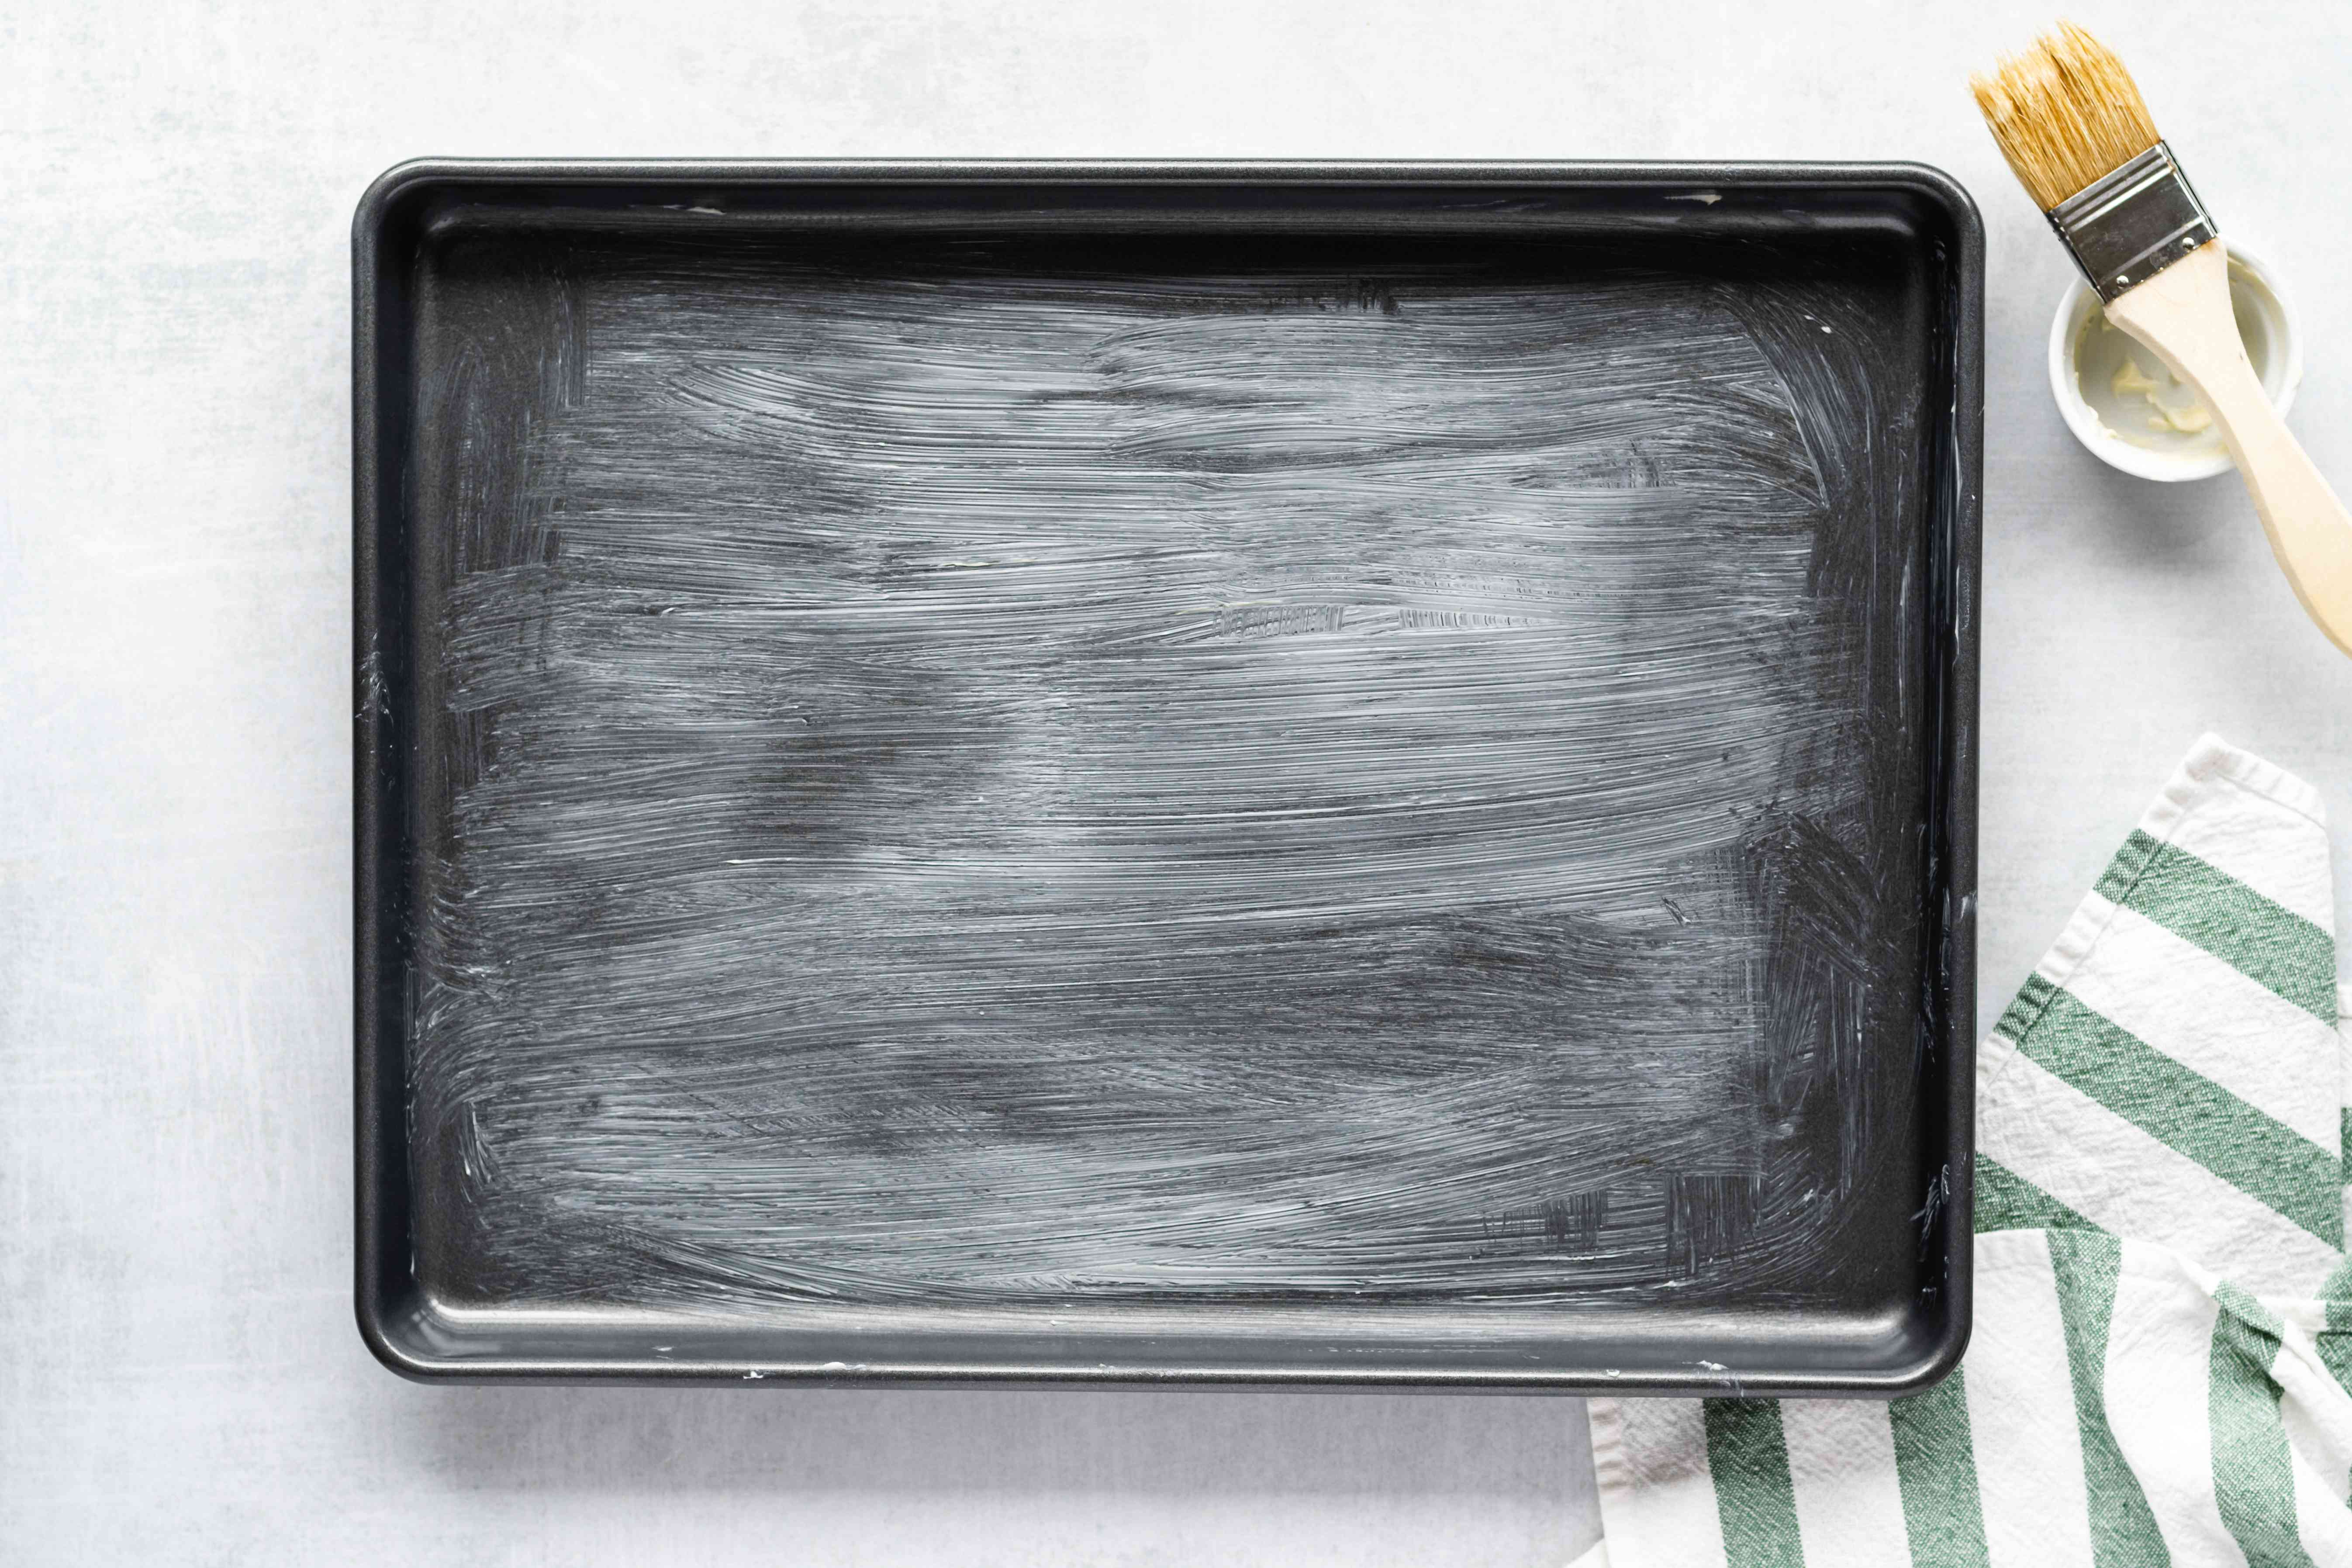 baking sheet brushed with butter